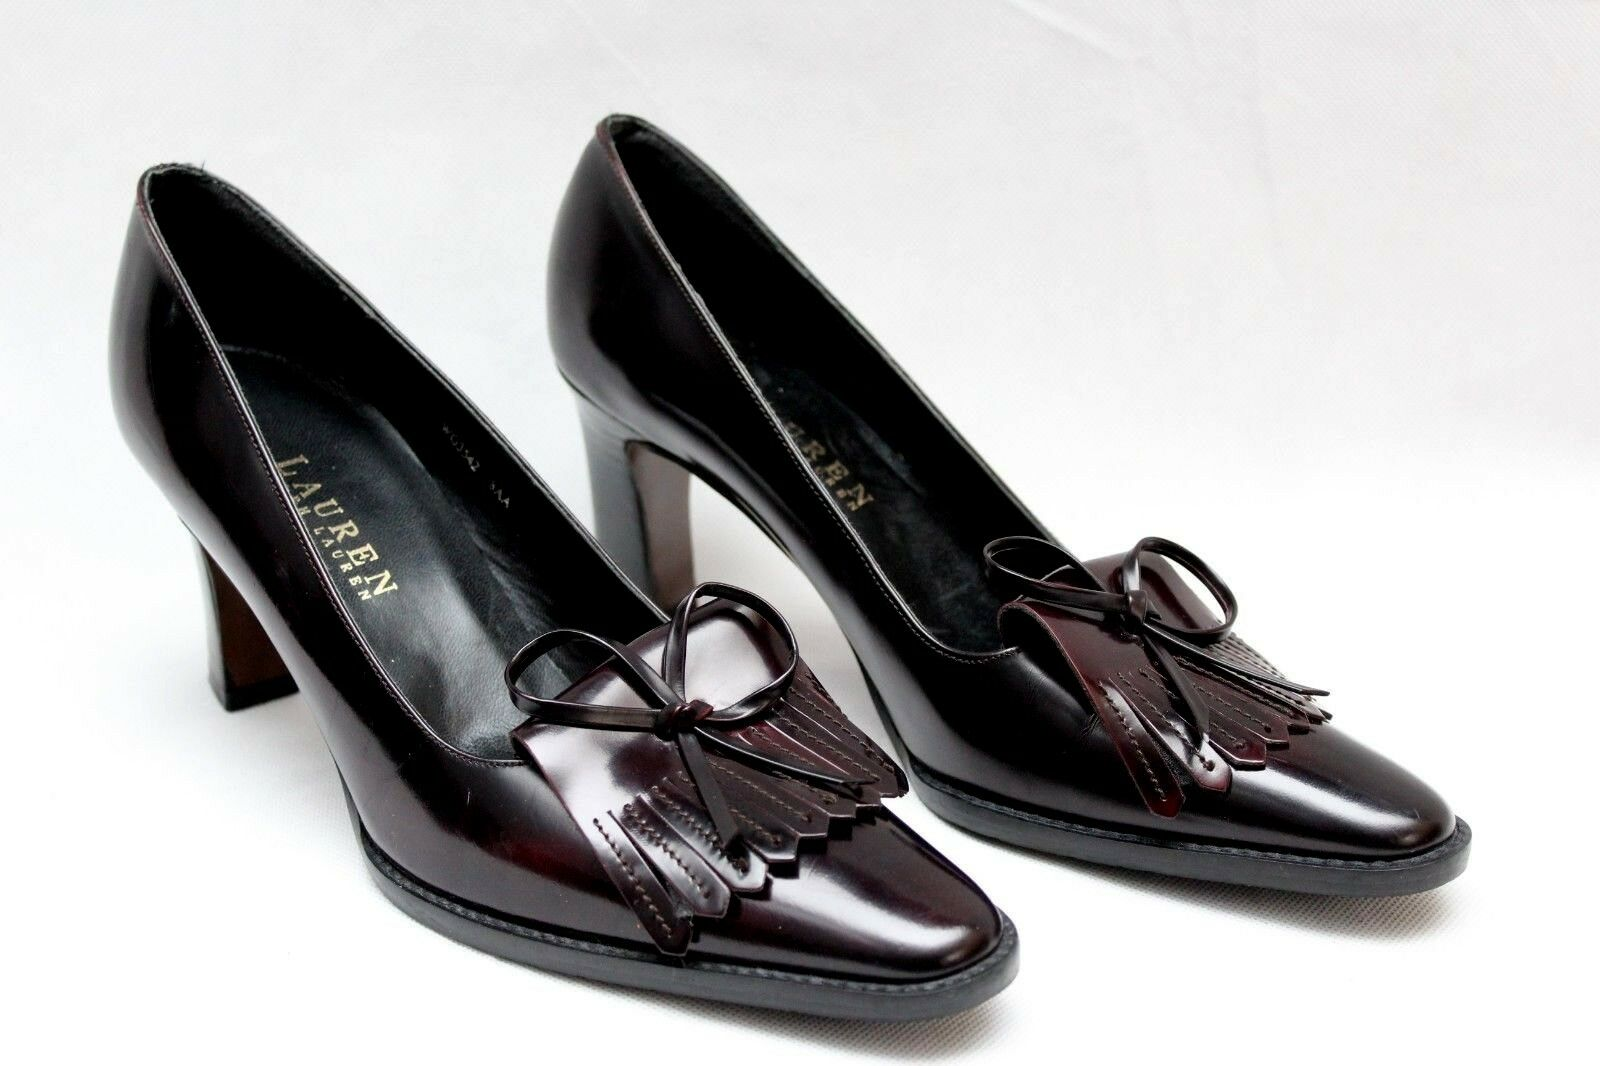 Ralph Lauren braun damen Kiltie Tassel Leather Pumps US 8 8 8 a17b7b